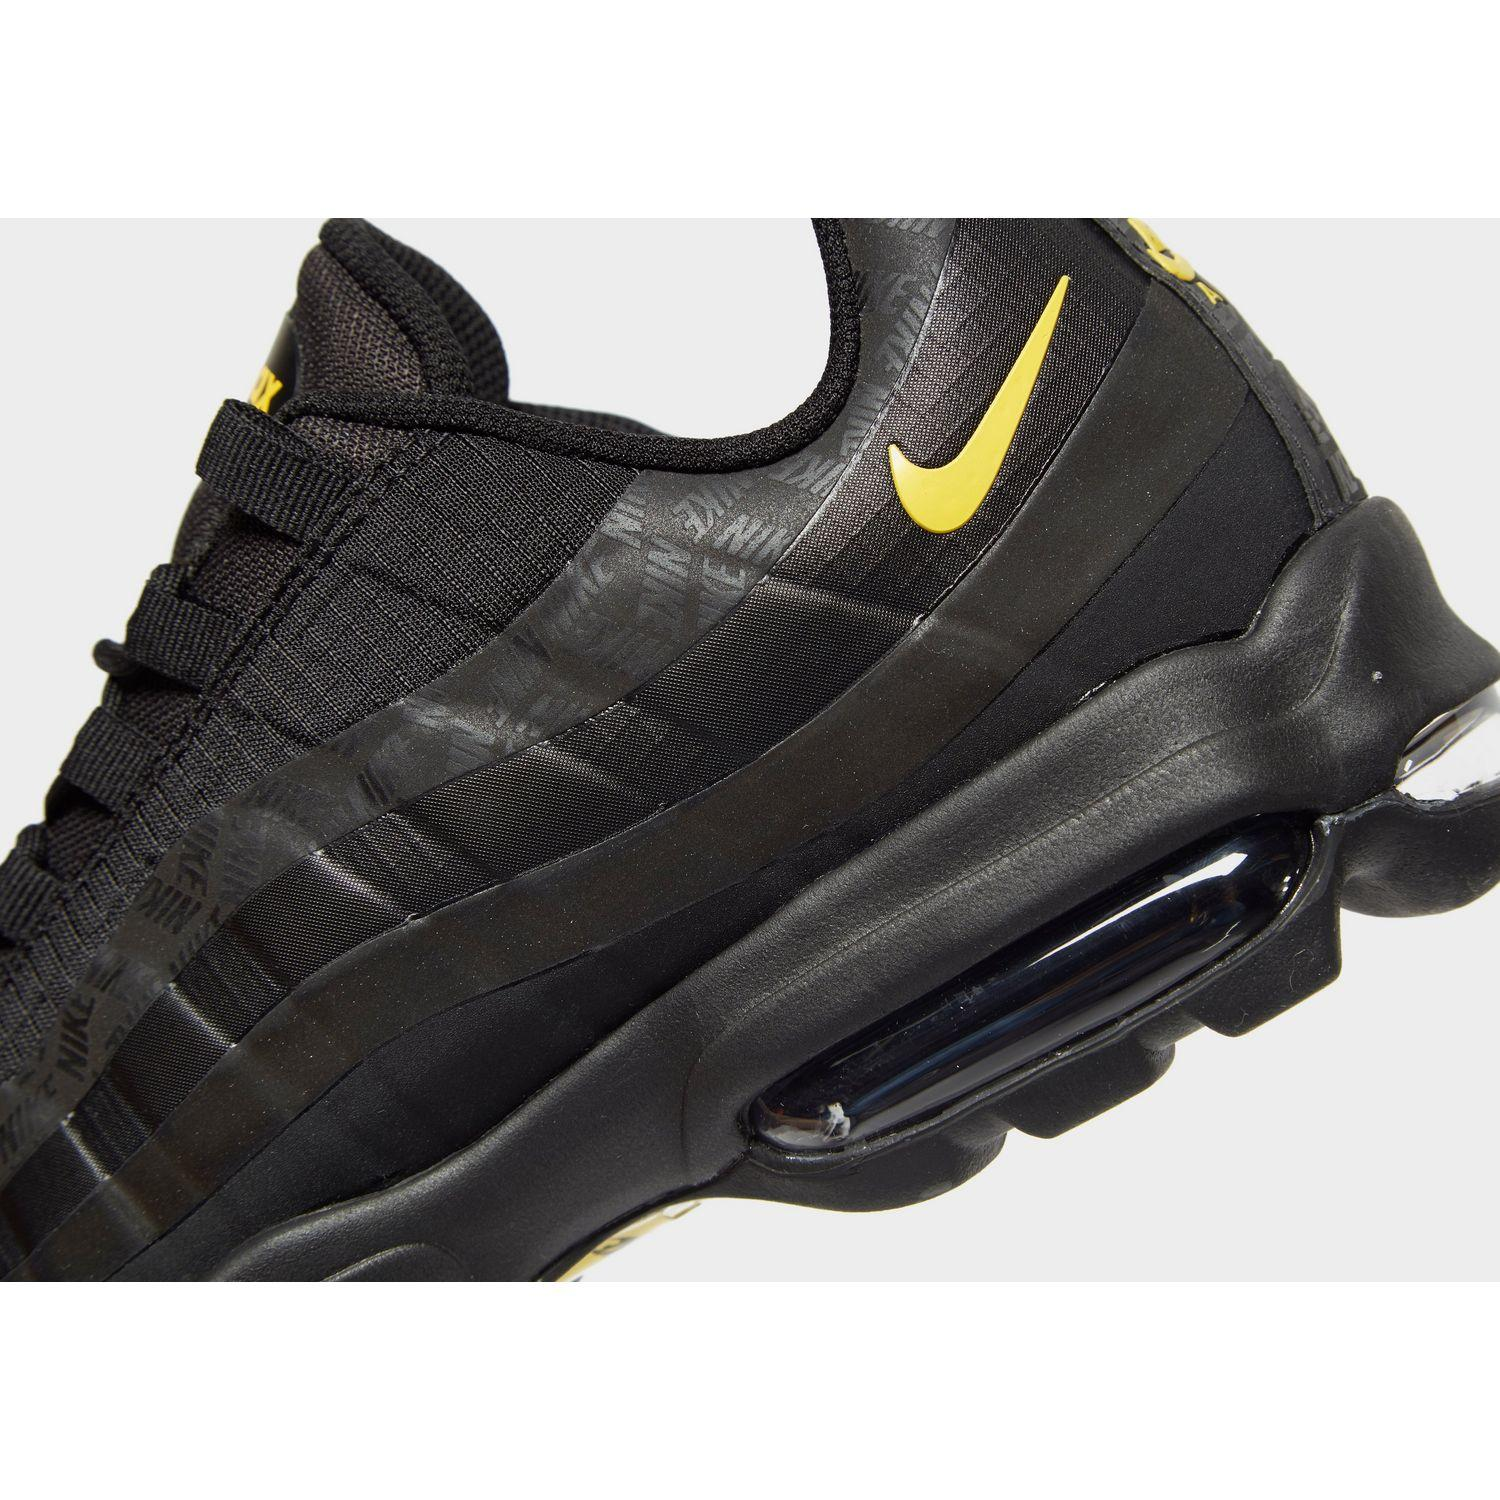 Nike Synthetic Air Max 95 Ultra Se in